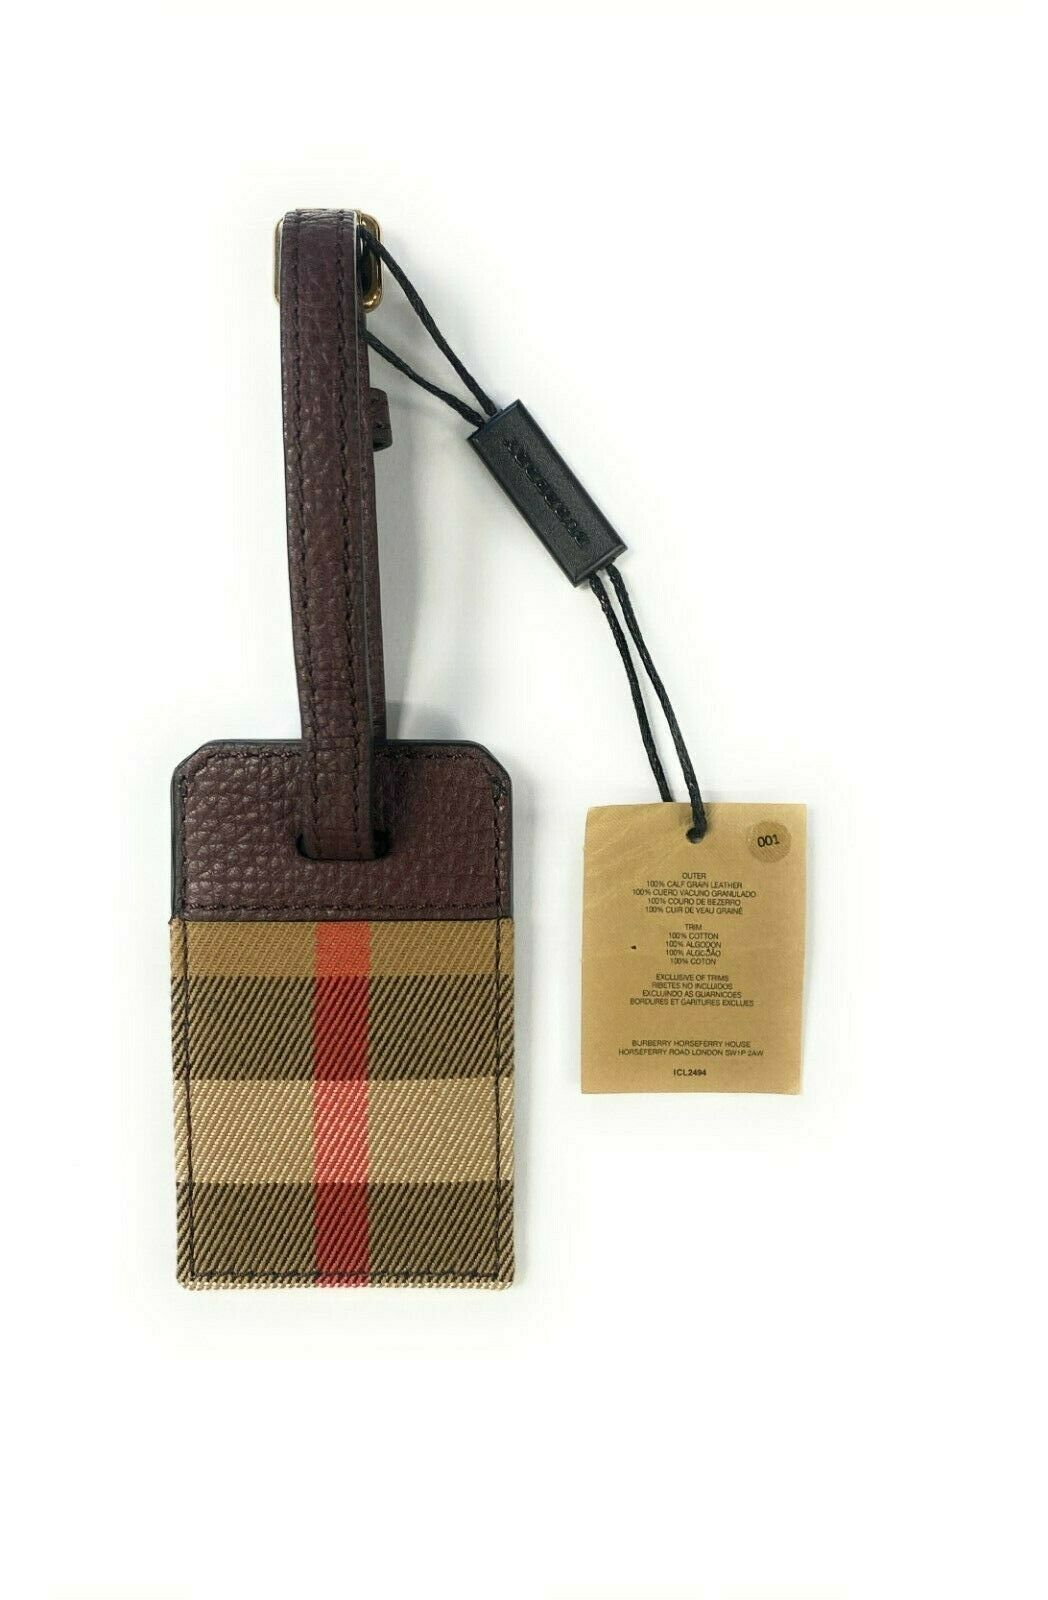 Burberry Leather Luggage Tag 100 Calf Grain Leather Burberry Horseferry House - $100.00